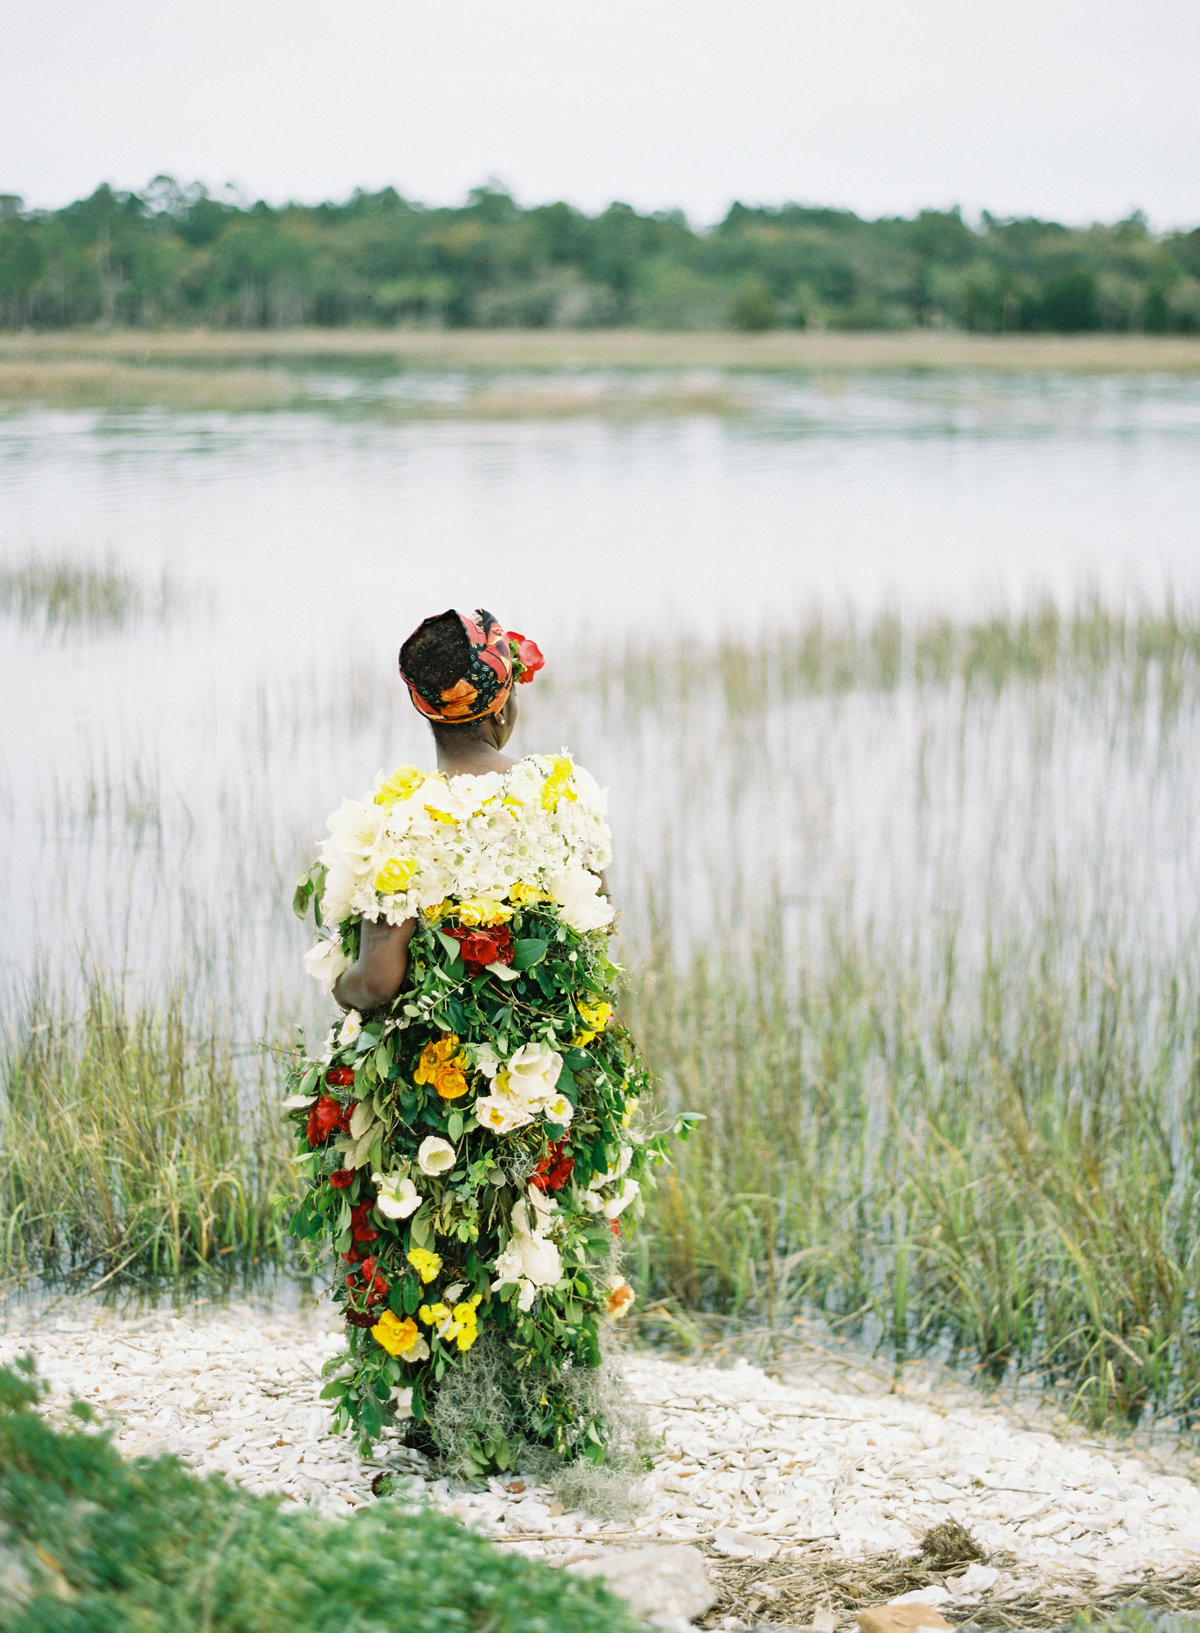 philip-casey-photography-and-roadside-blooms-in-charleston-sc-jonathan Green-inspired-11